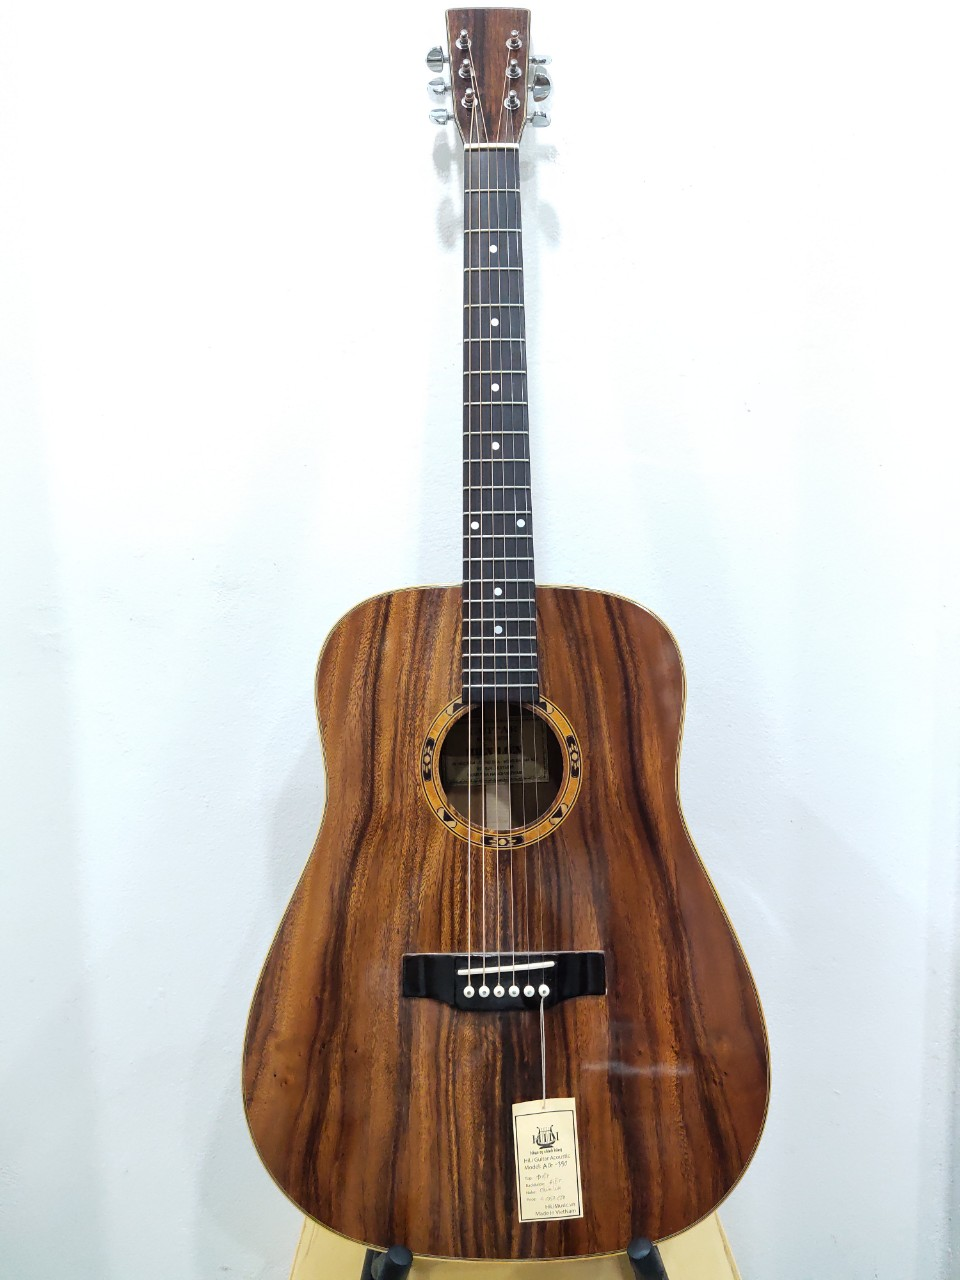 Đàn Guitar Acoustic AG-390A Full Điệp Made in VietNam